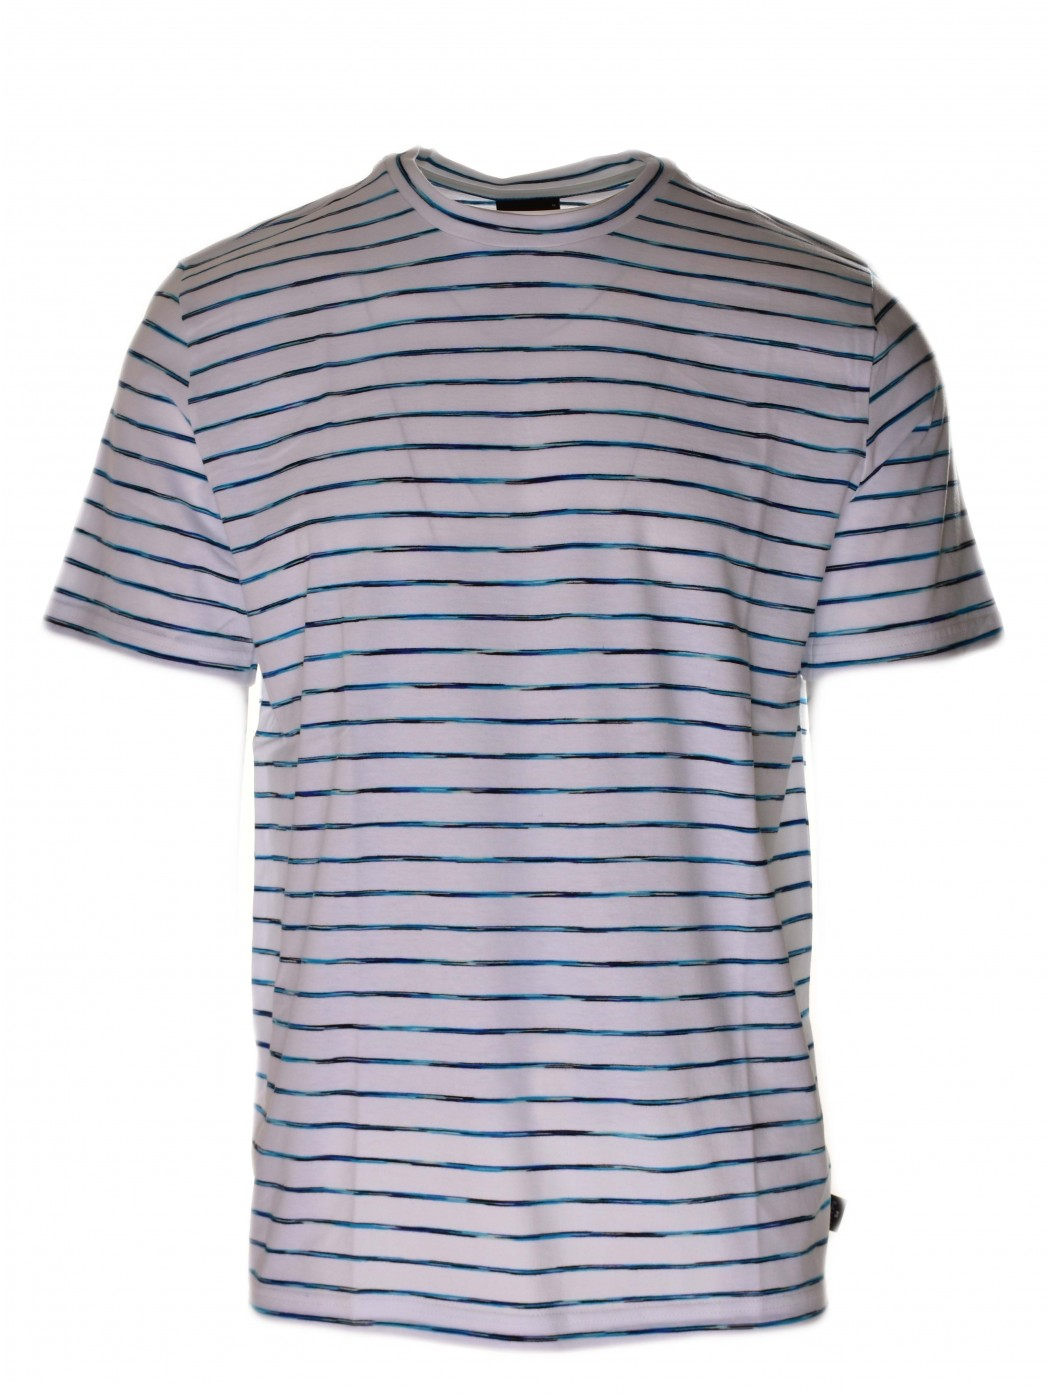 PAUL SMITH PUXD011 47 T-SHIRT